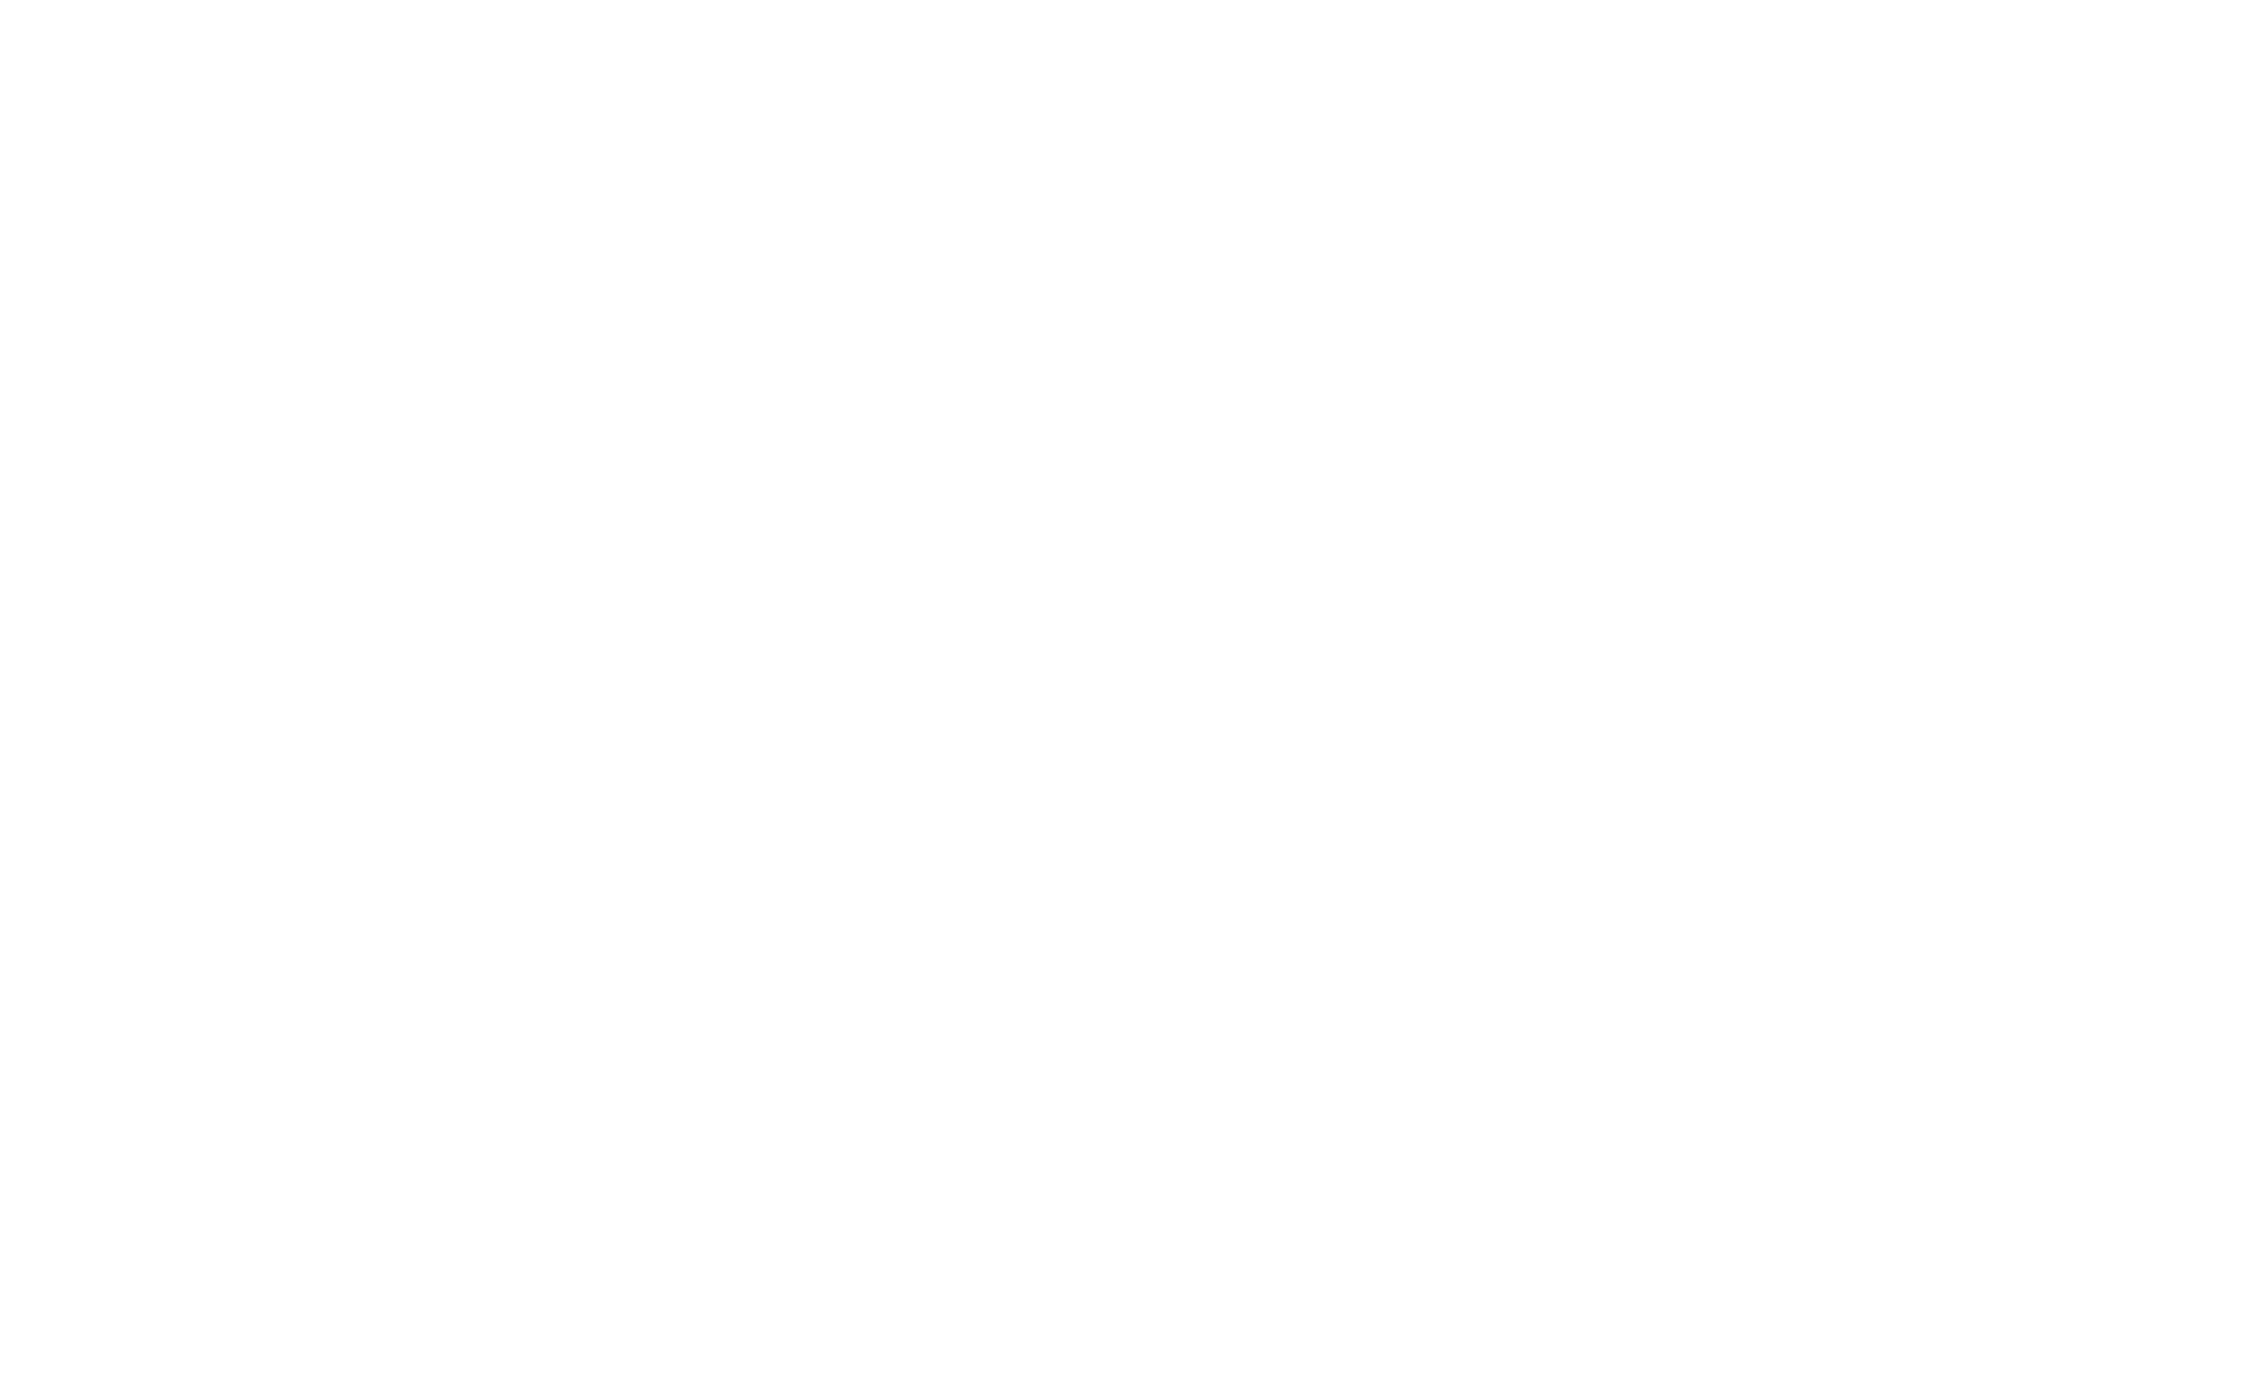 Madison on Mercer apartments logo